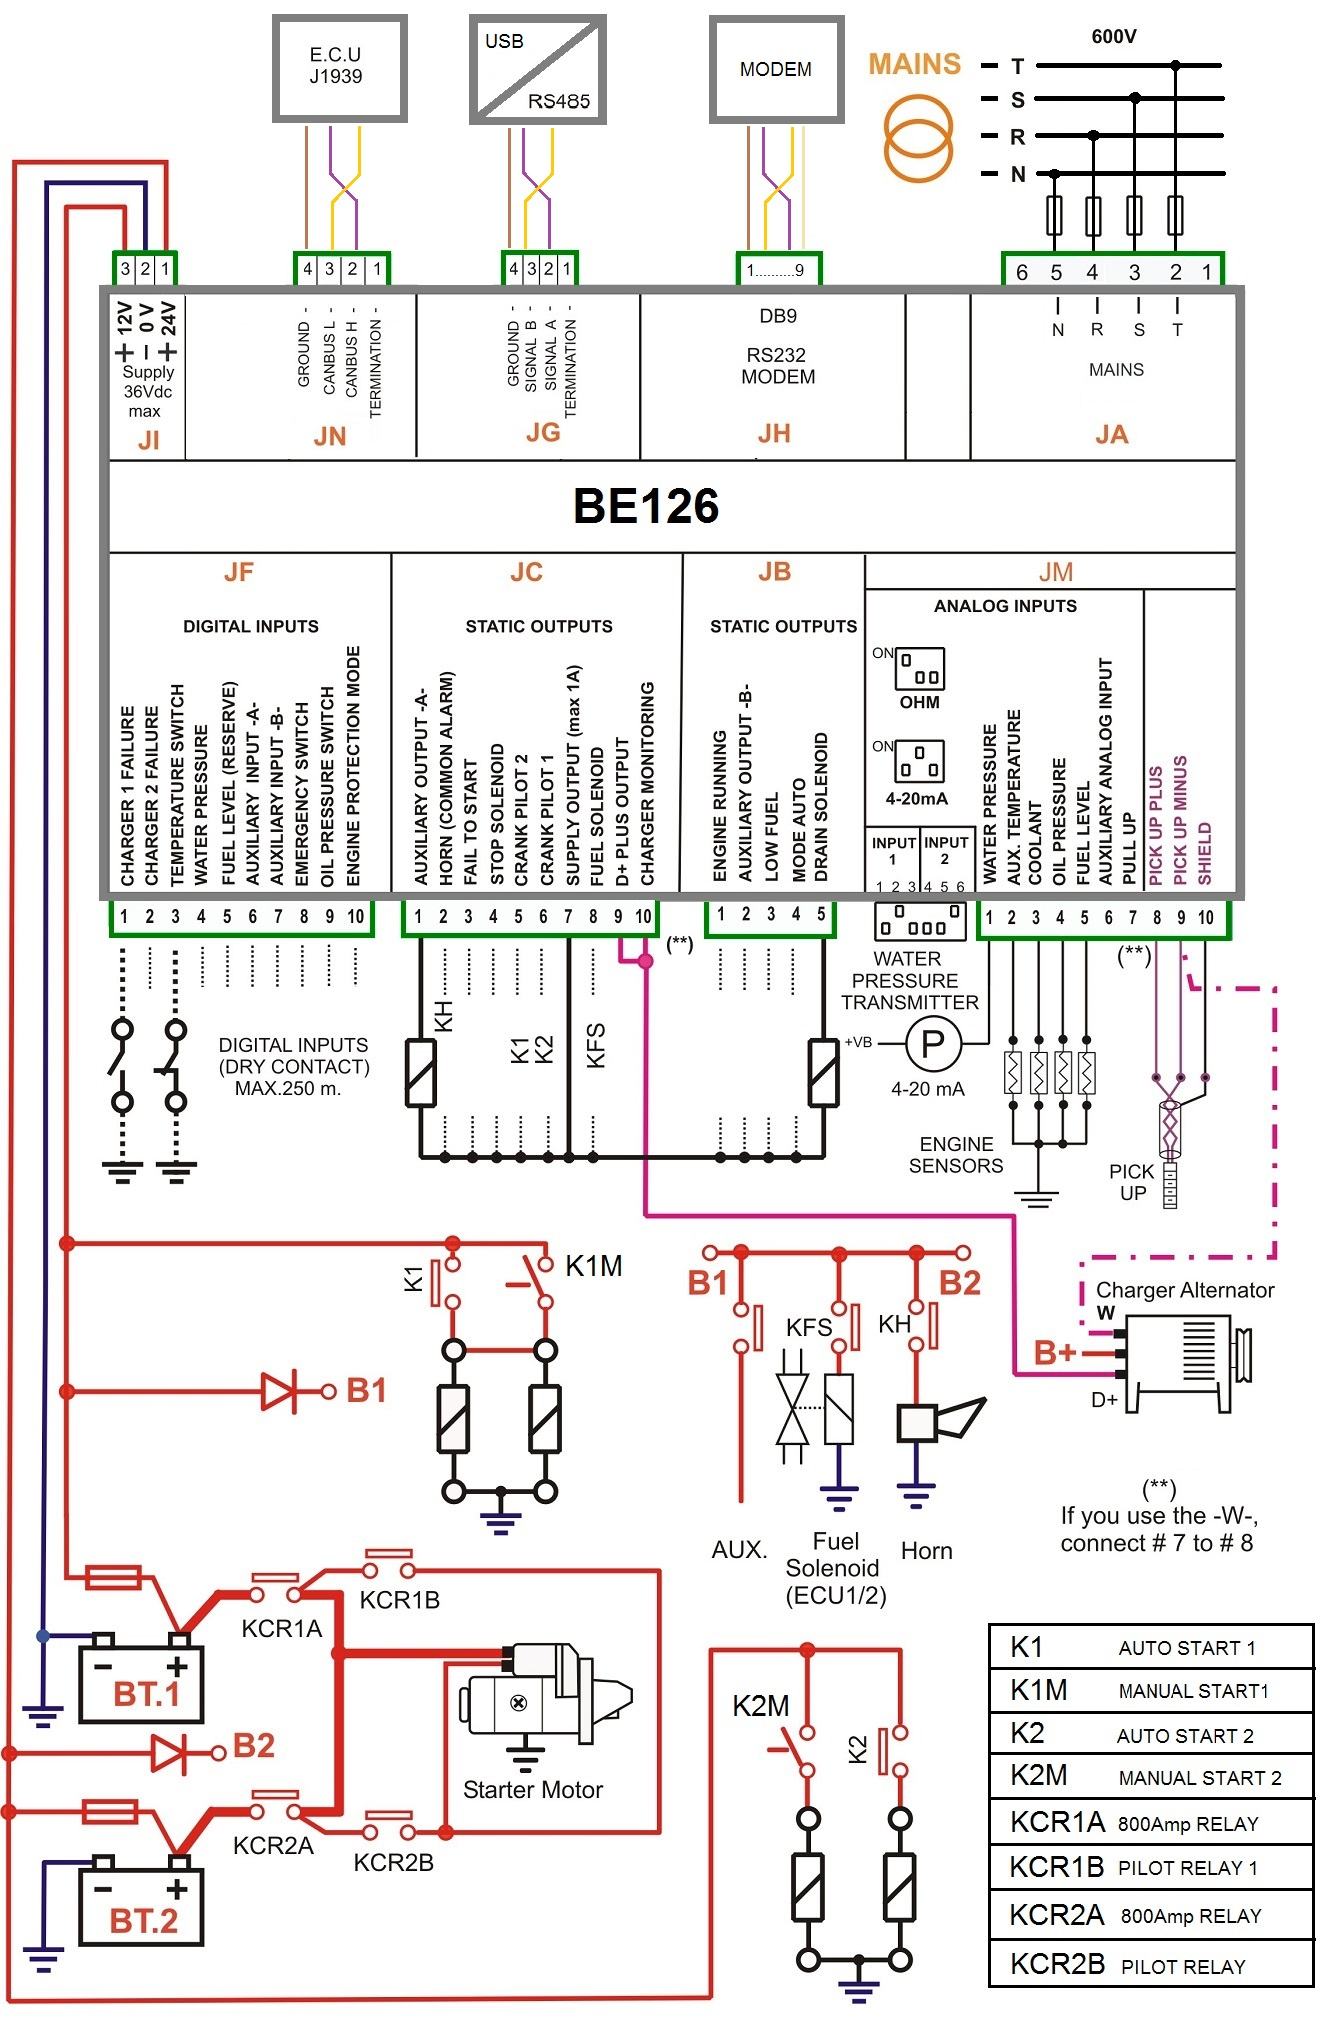 NFPA20 fire pump controller wiring diagram fire pump controller wiring diagram genset controller control panel diagram at gsmx.co